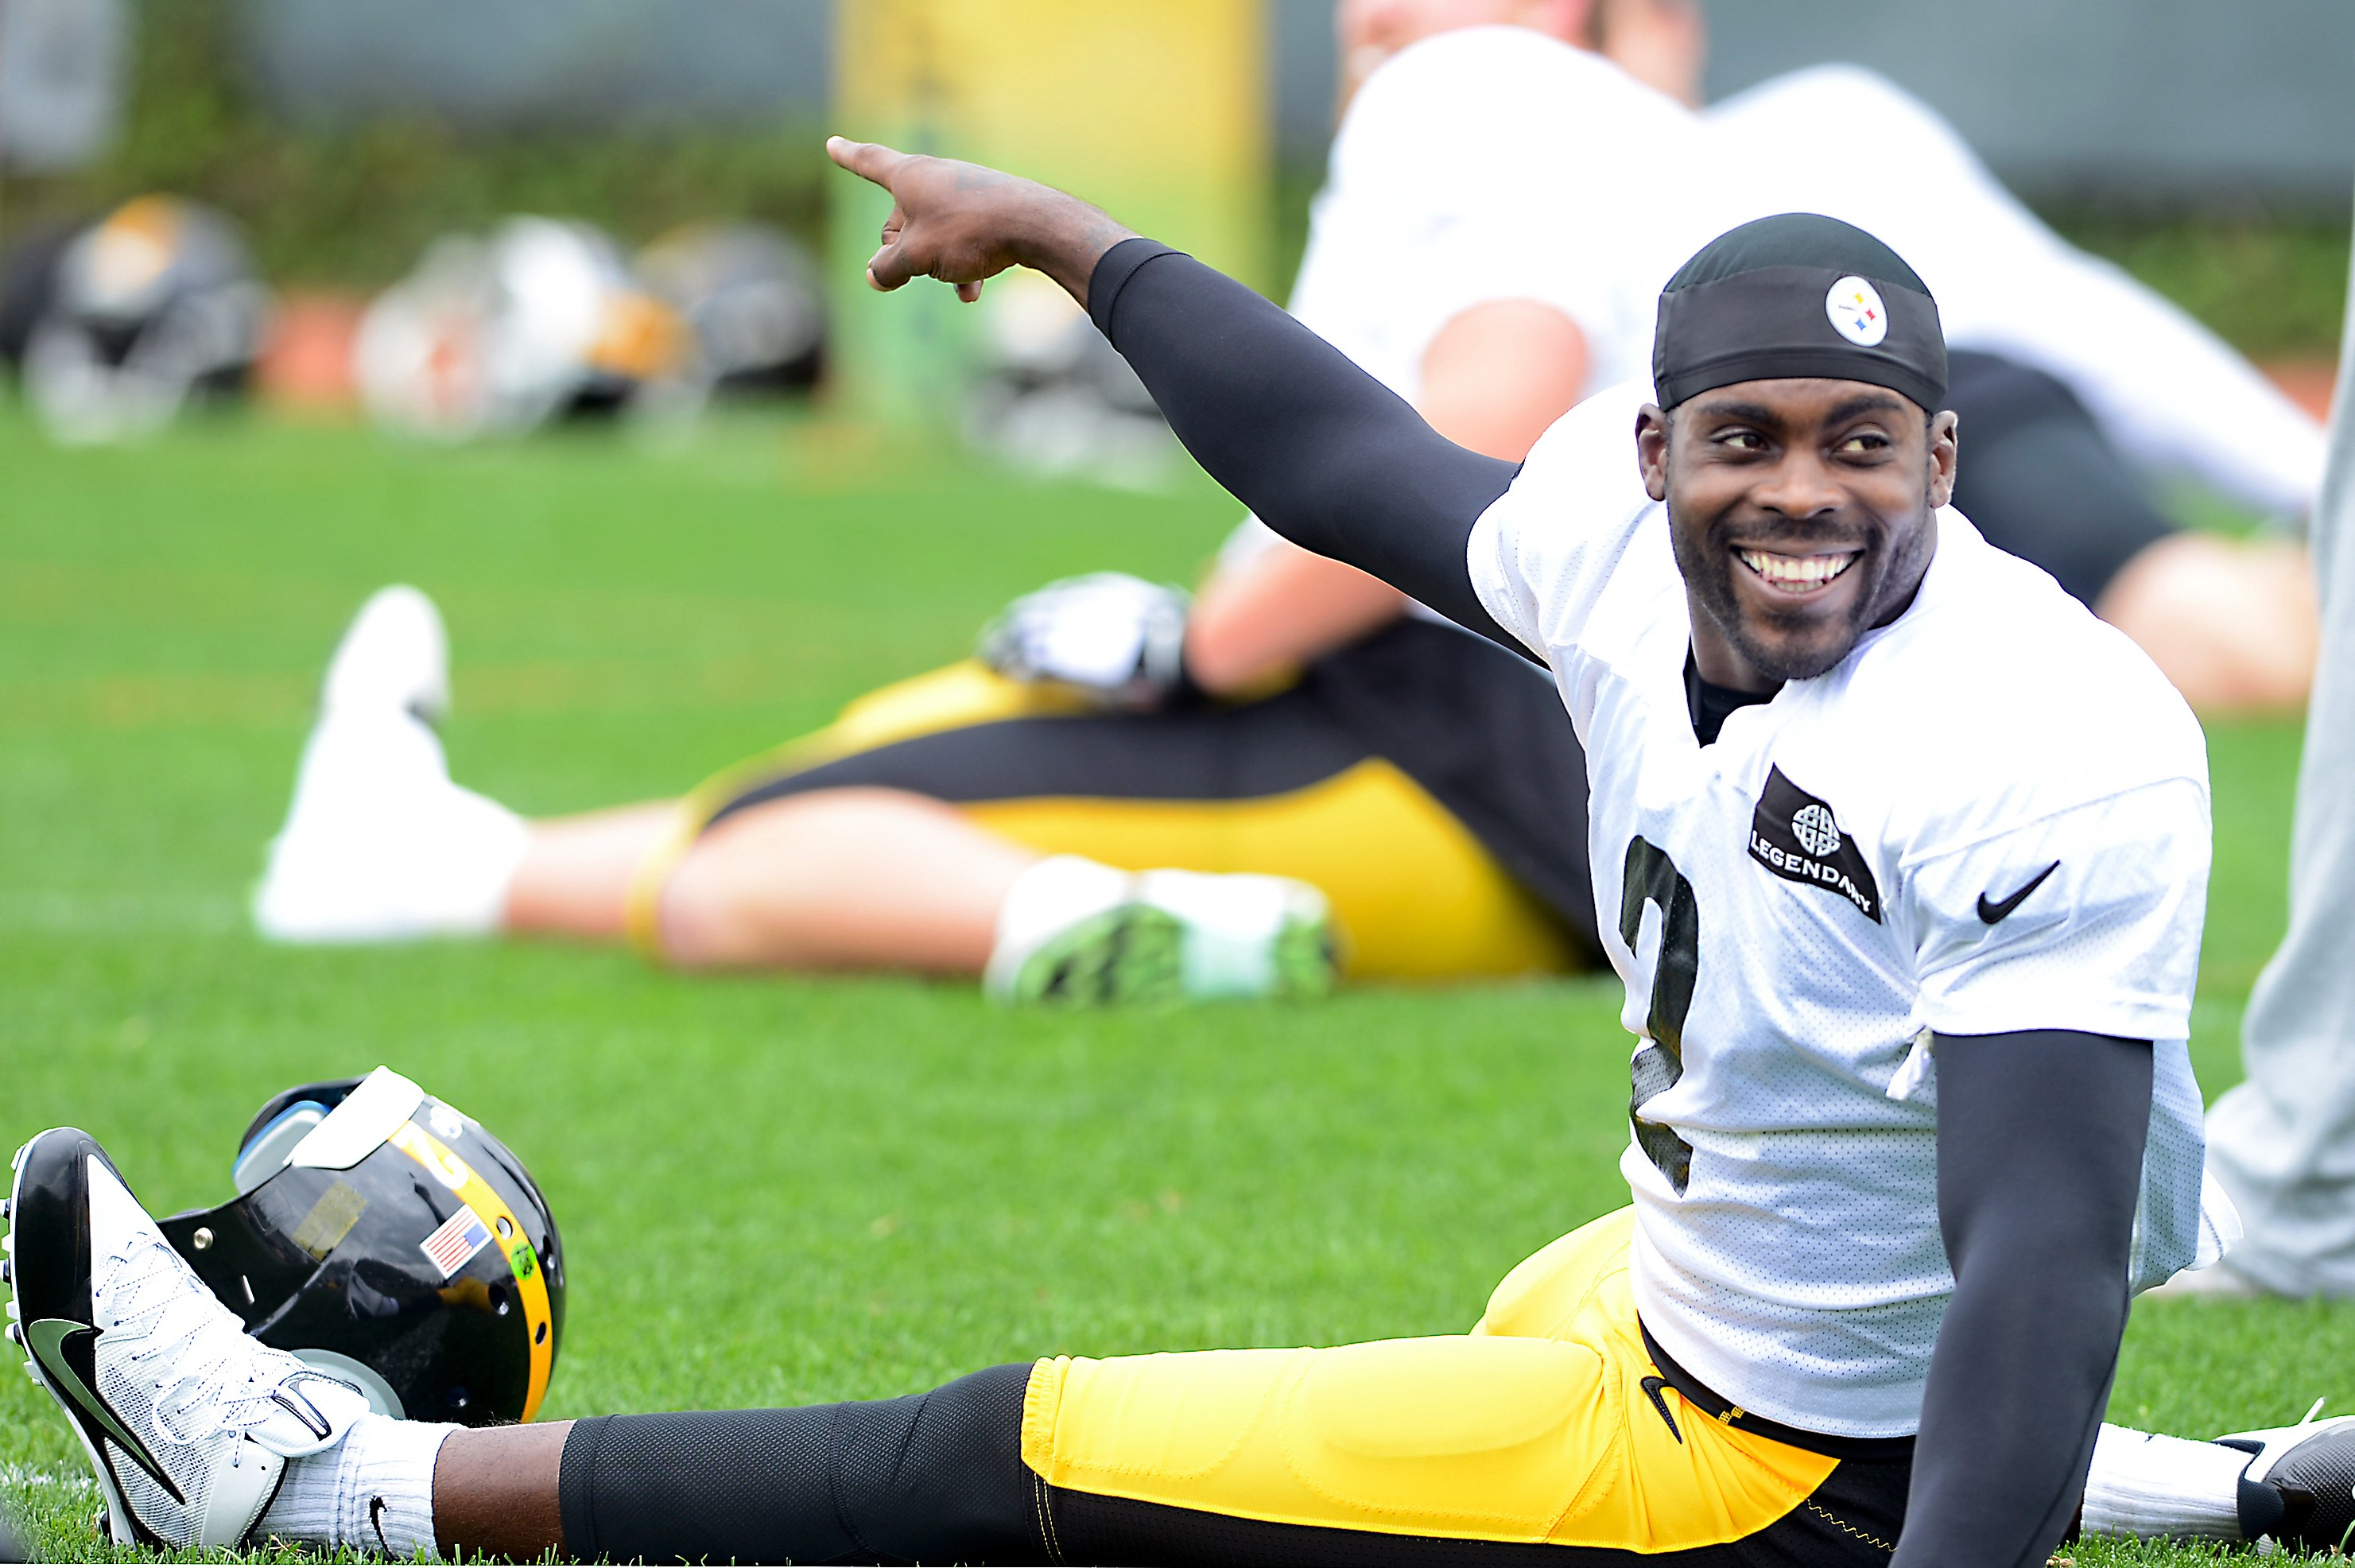 Quarterback Michael Vick practices with the Steelers at the team's South Side facility. His signing to the Pittsburgh football team has brought protests from many local animal lovers and animal groups.